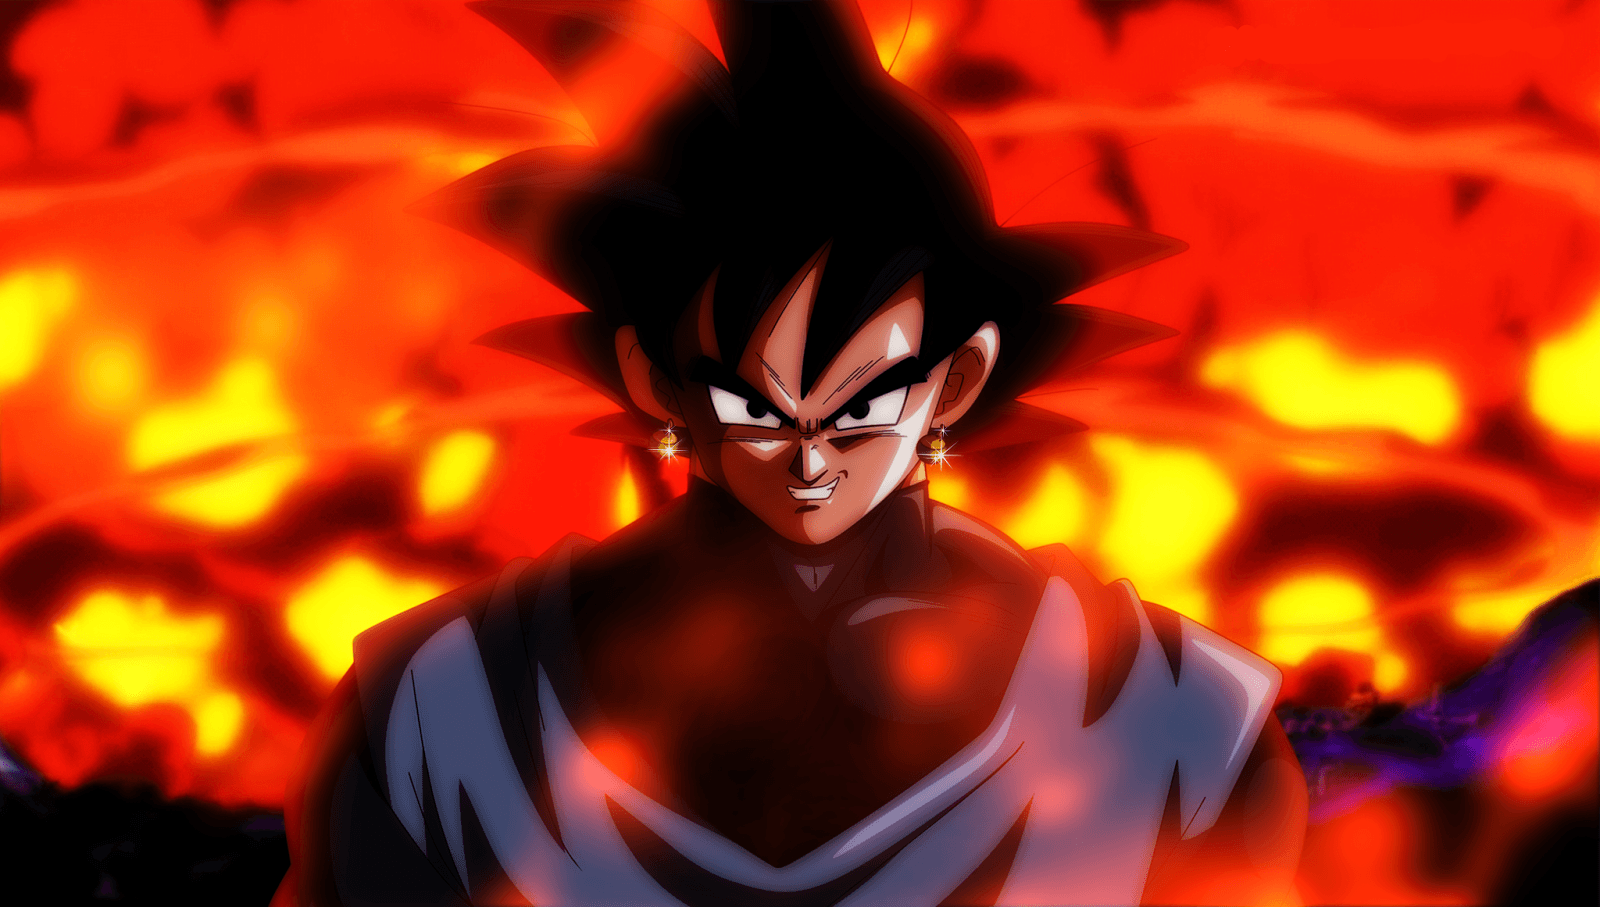 goku black wallpapers wallpaper cave. Black Bedroom Furniture Sets. Home Design Ideas